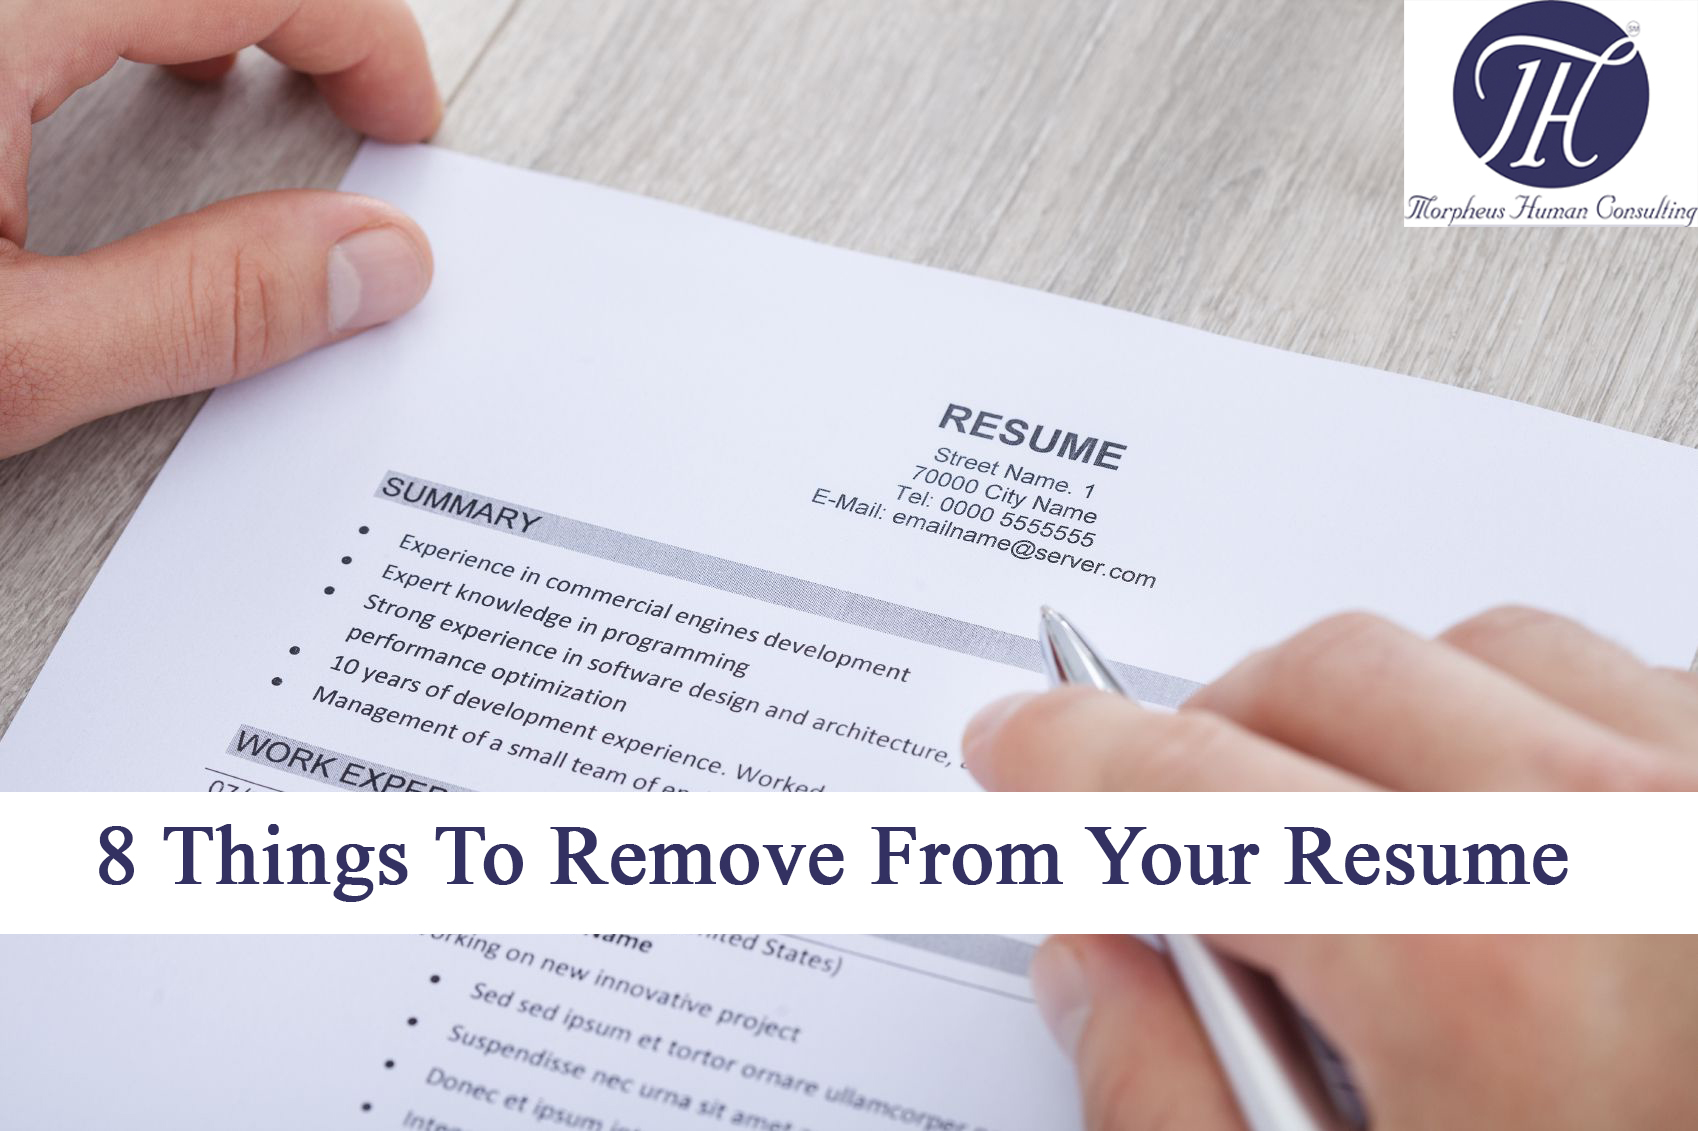 8 Things To Remove From Your Resume